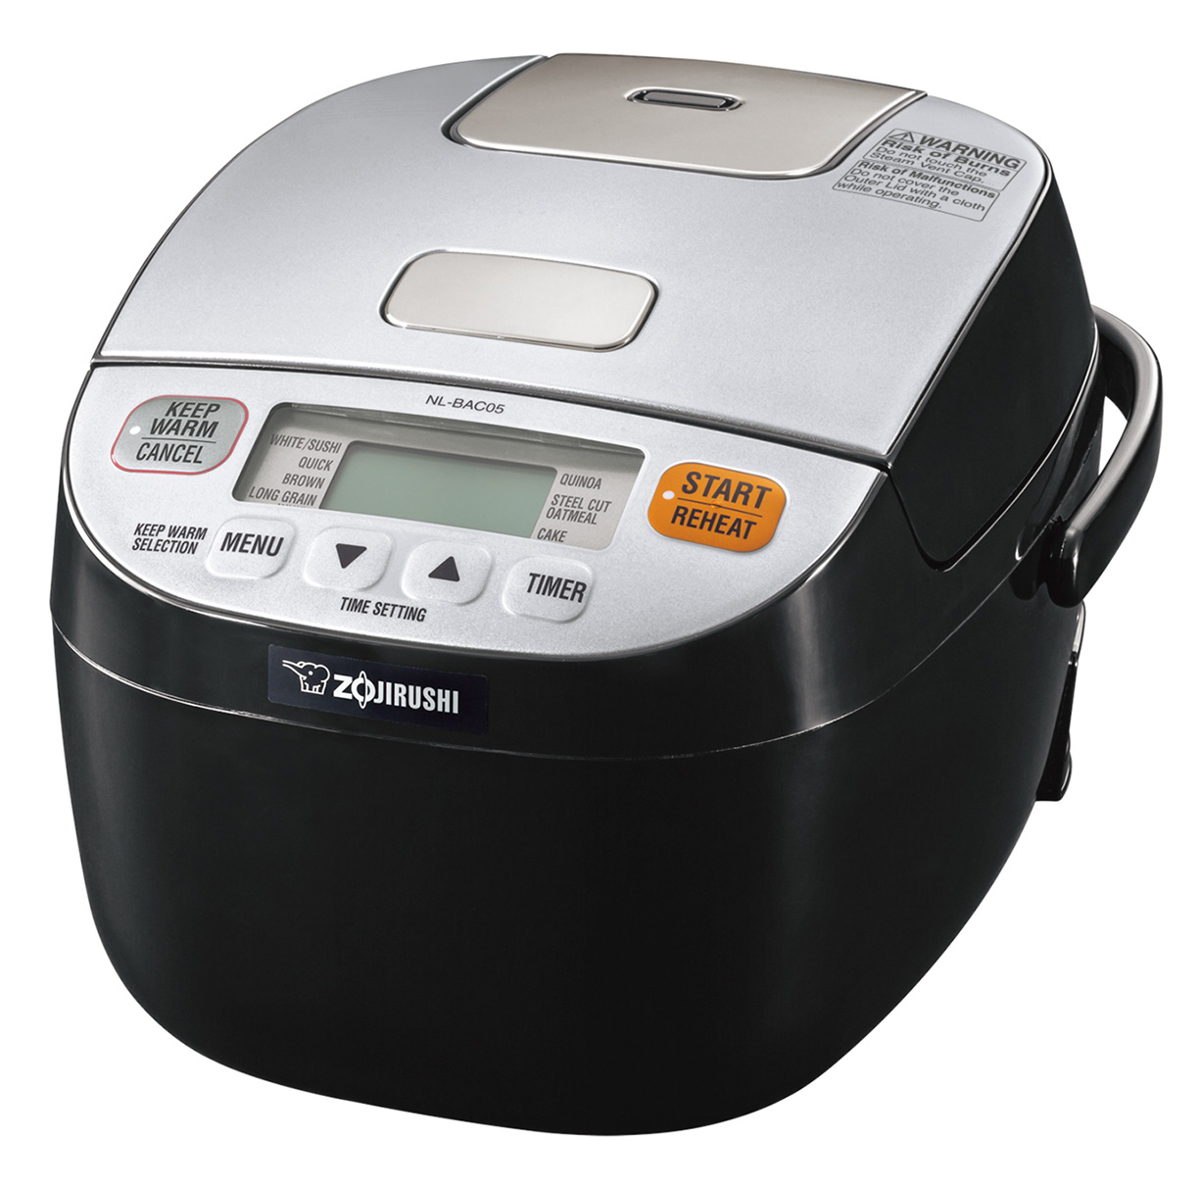 Zojirushi Micom Rice Cooker and Warmer (Micom Rice Cookers Plus), Black (Metal)